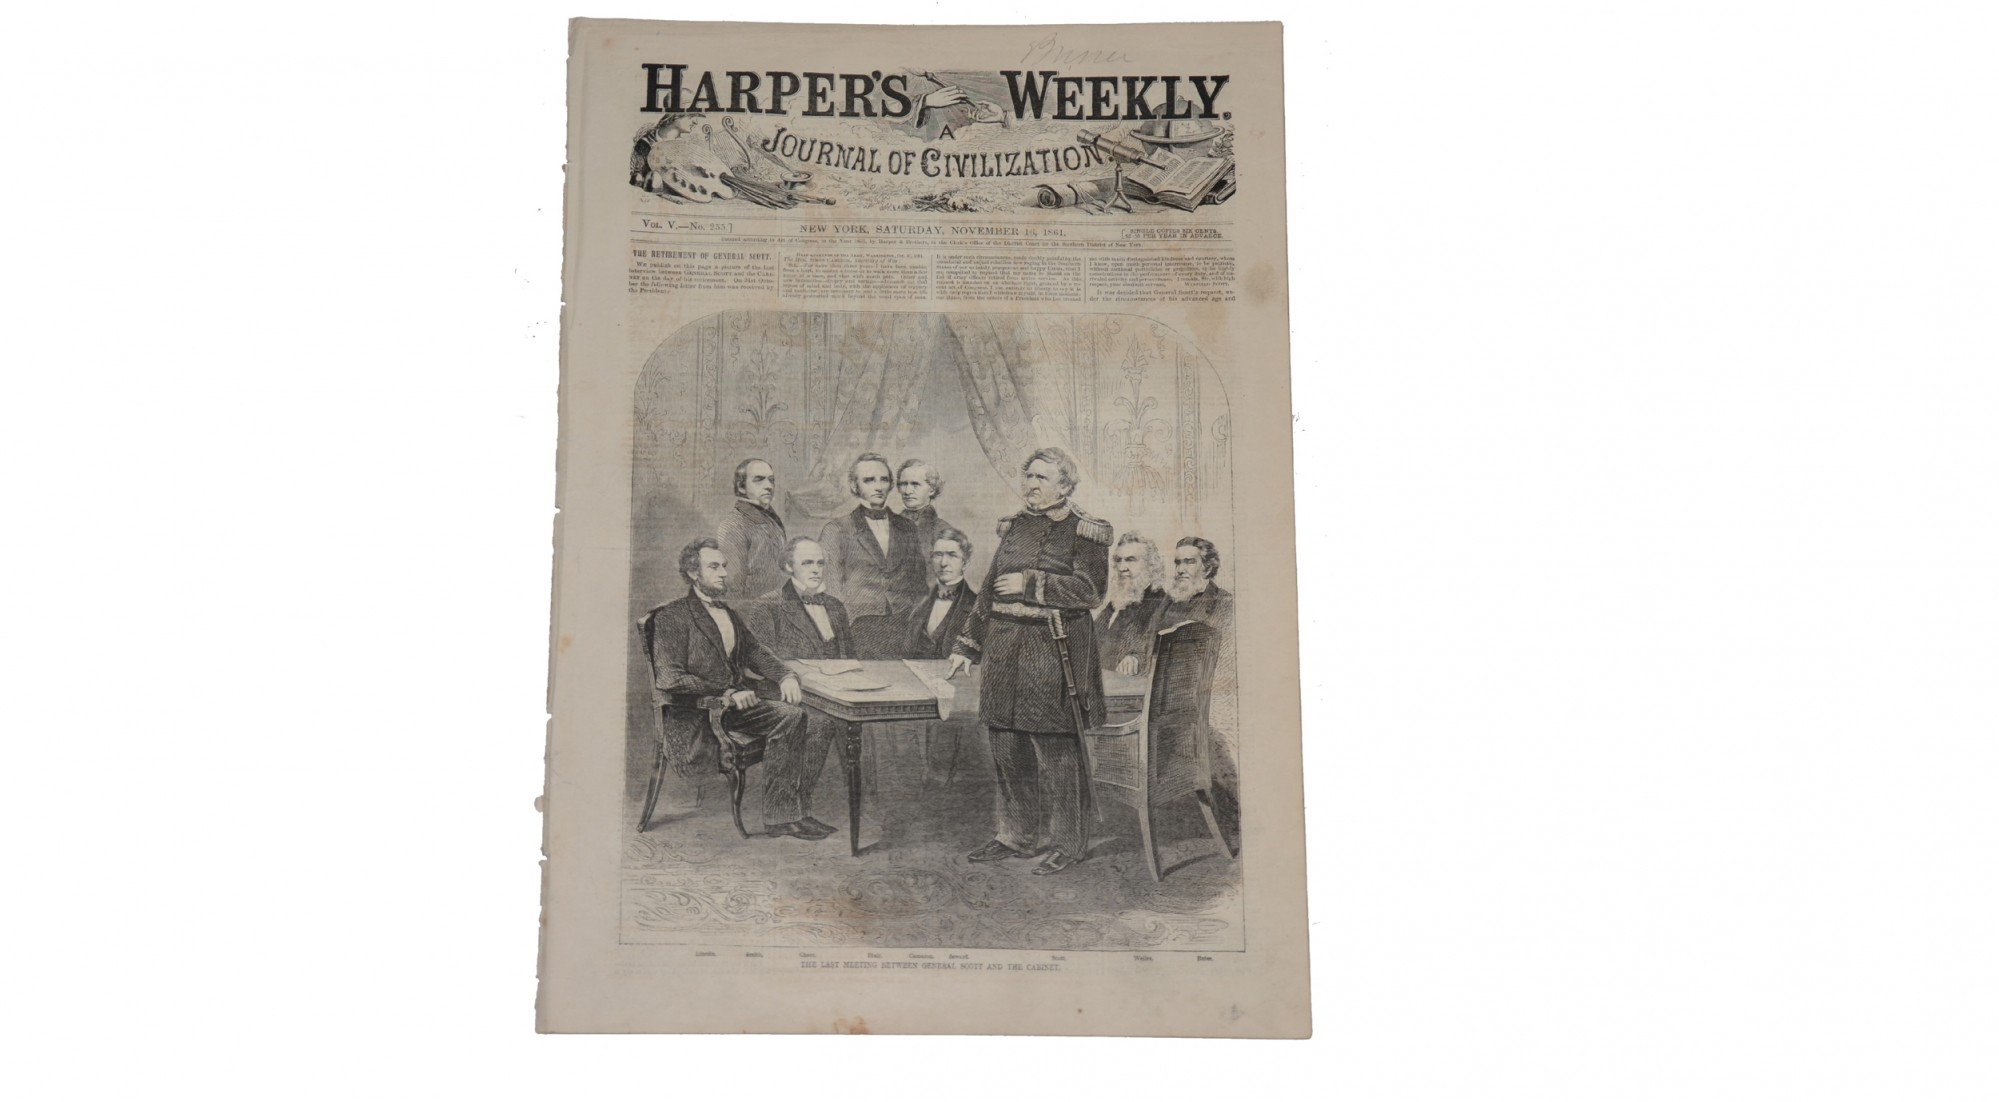 HARPER'S WEEKLY, NEW YORK, NOVEMBER 6, 1861 – GEN. SCOTT RETIRES